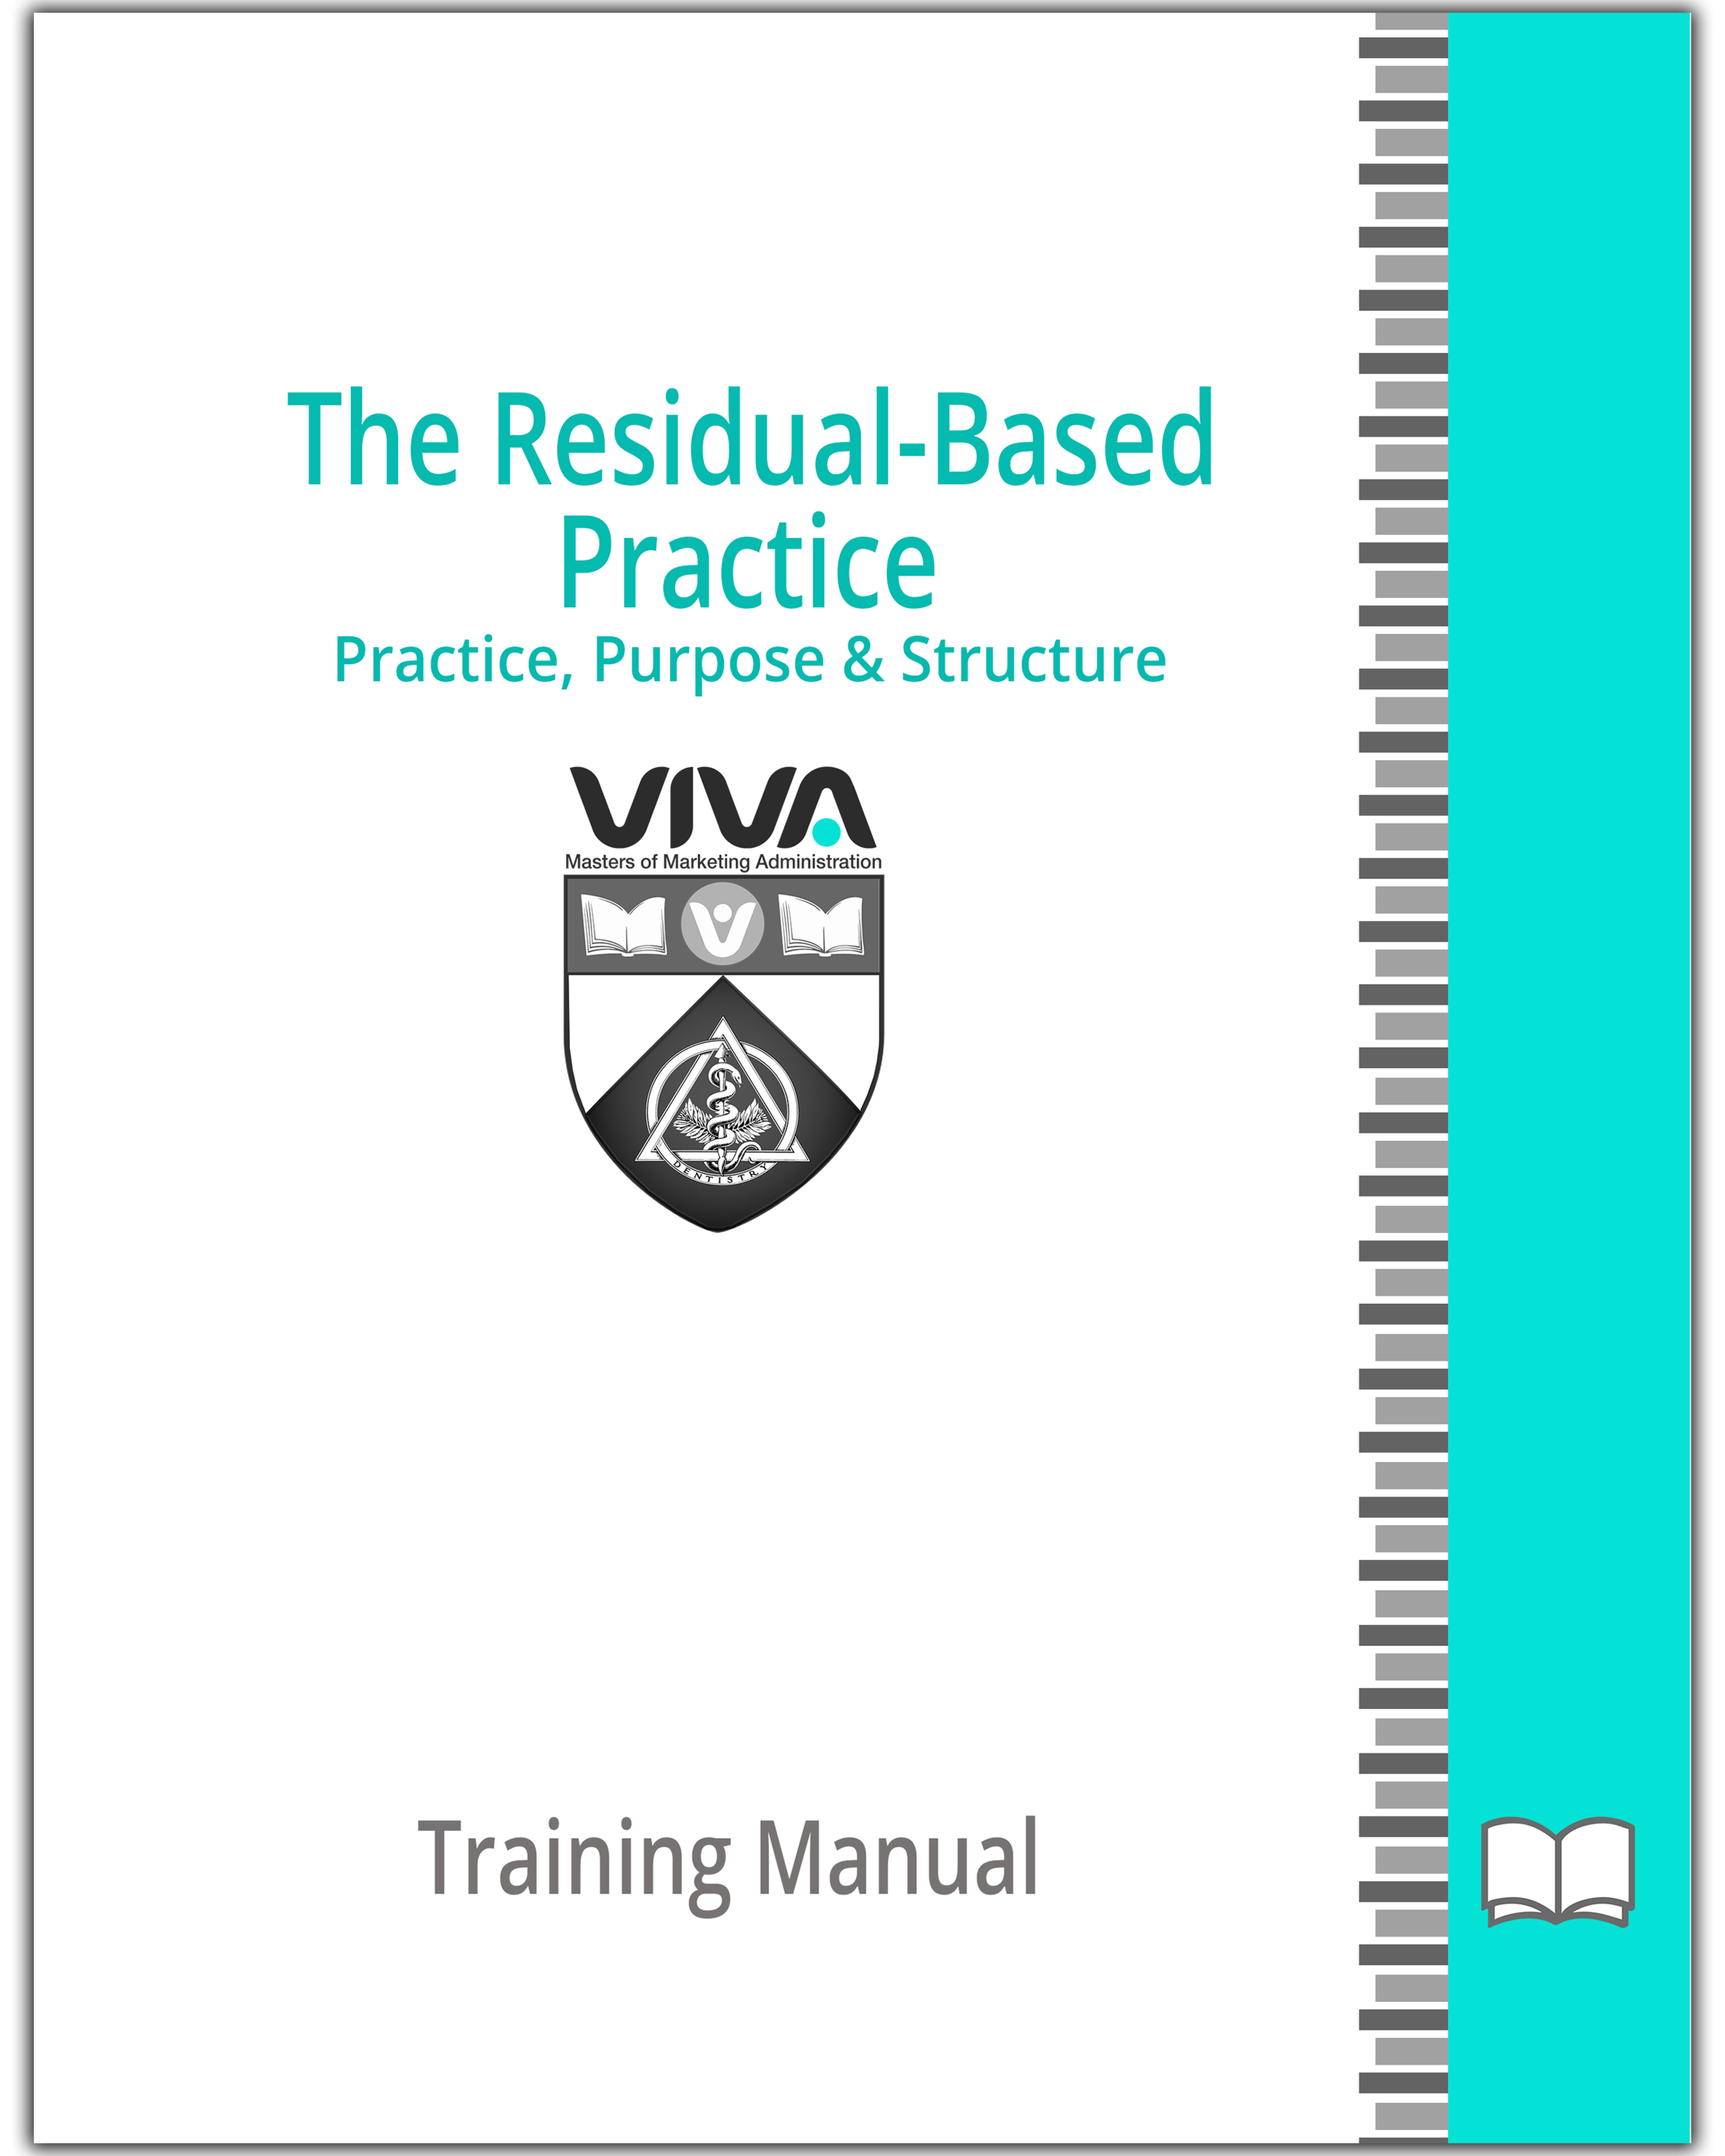 The residual system course